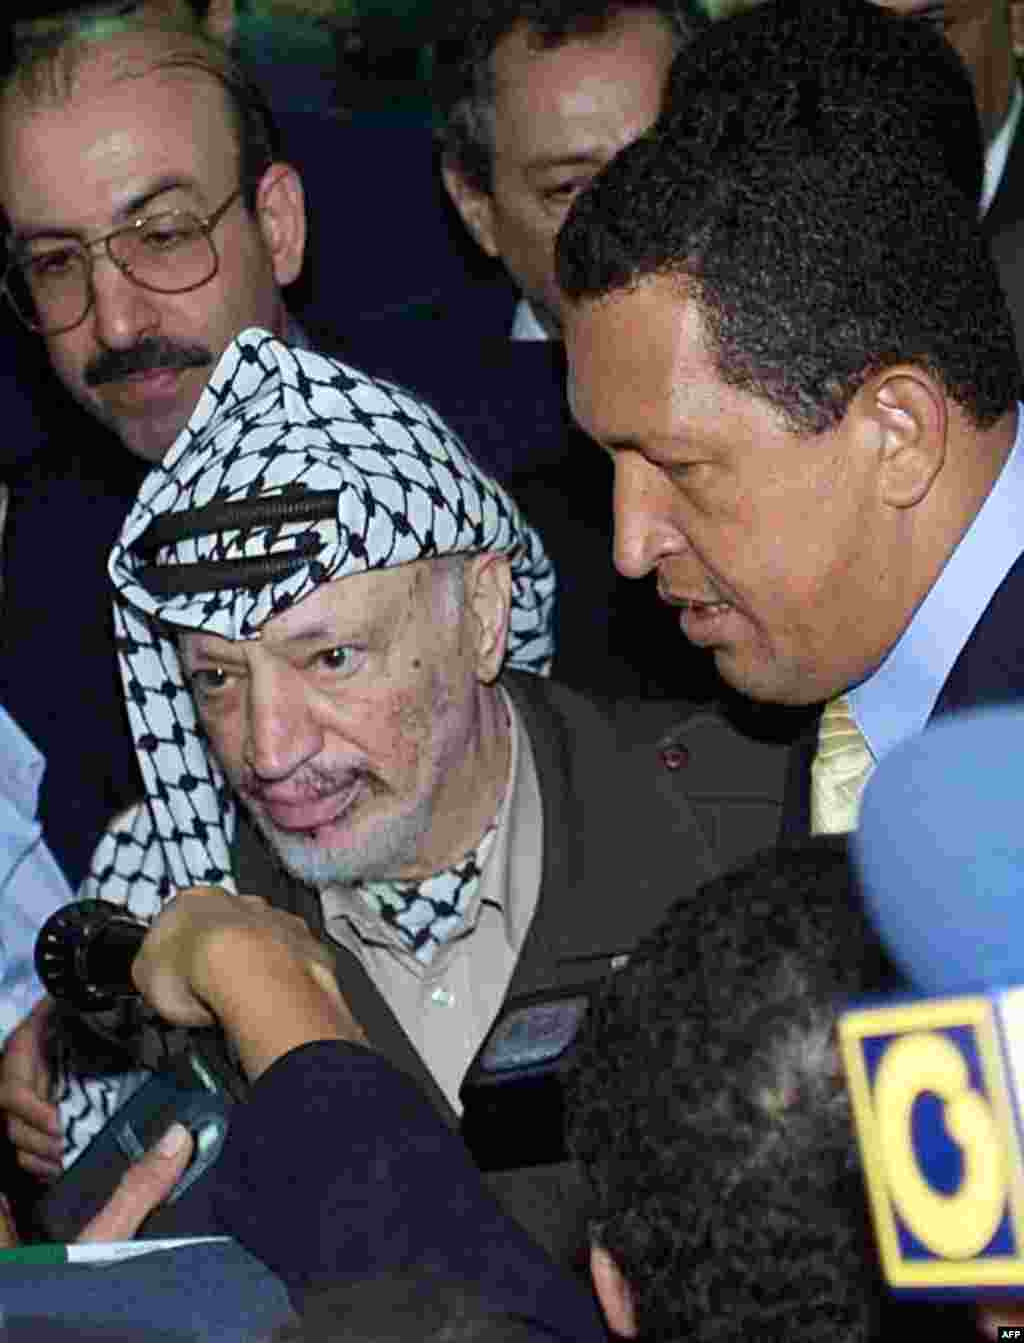 Yasser Arafat (left), then president of the Palestinian Authority, talks with media beside Chavez at the Convention Center in Havana, Cuba, in April 2000.